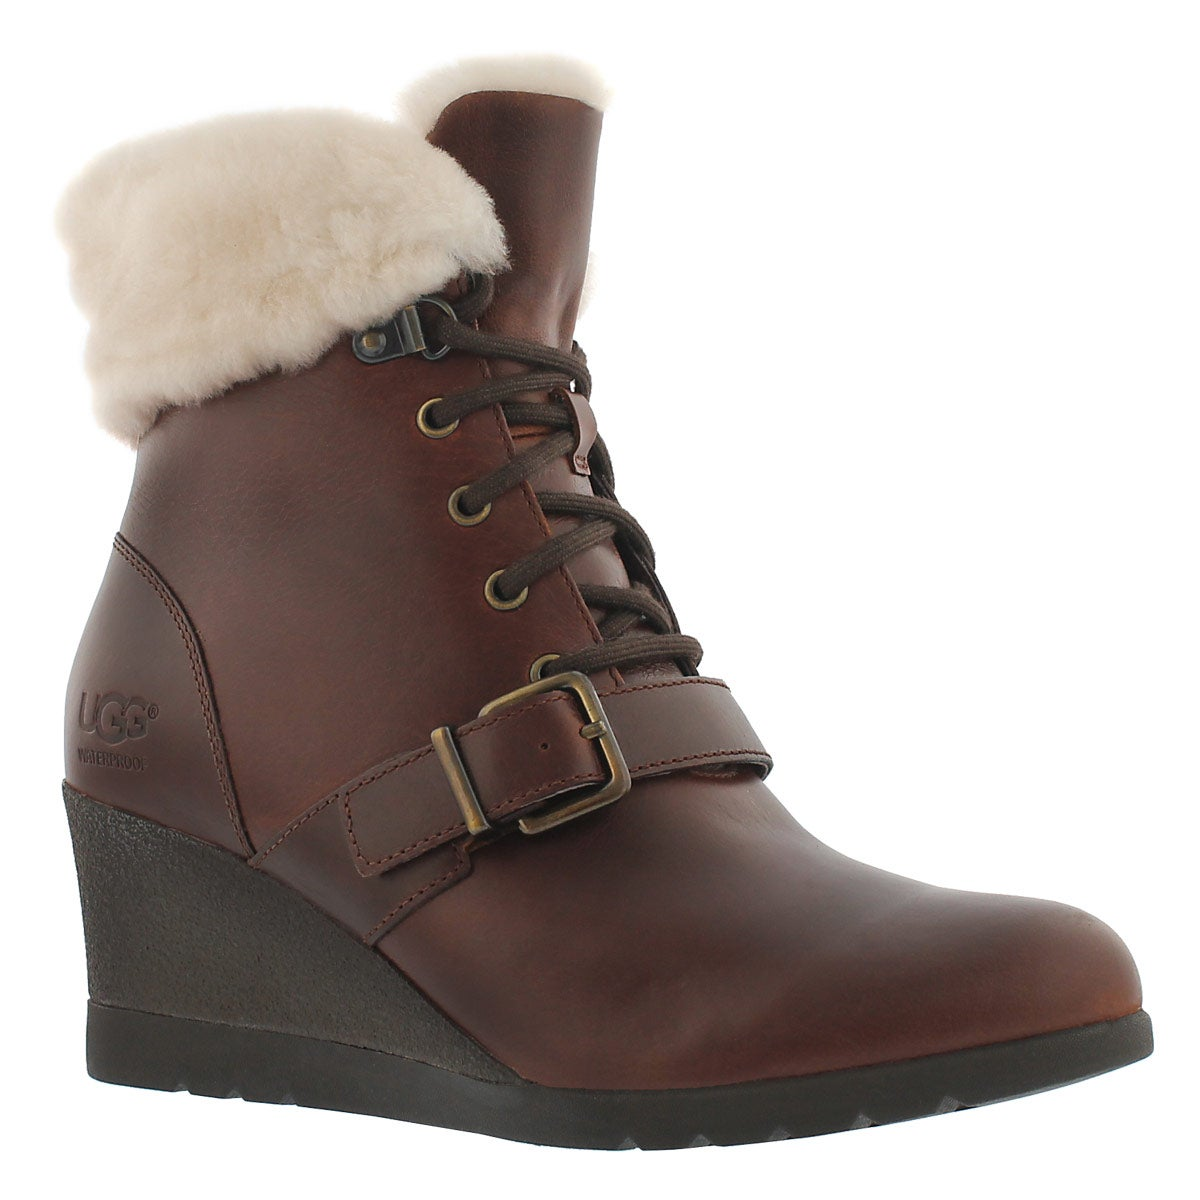 Women's JANNEY stout fur cuff wedge boots